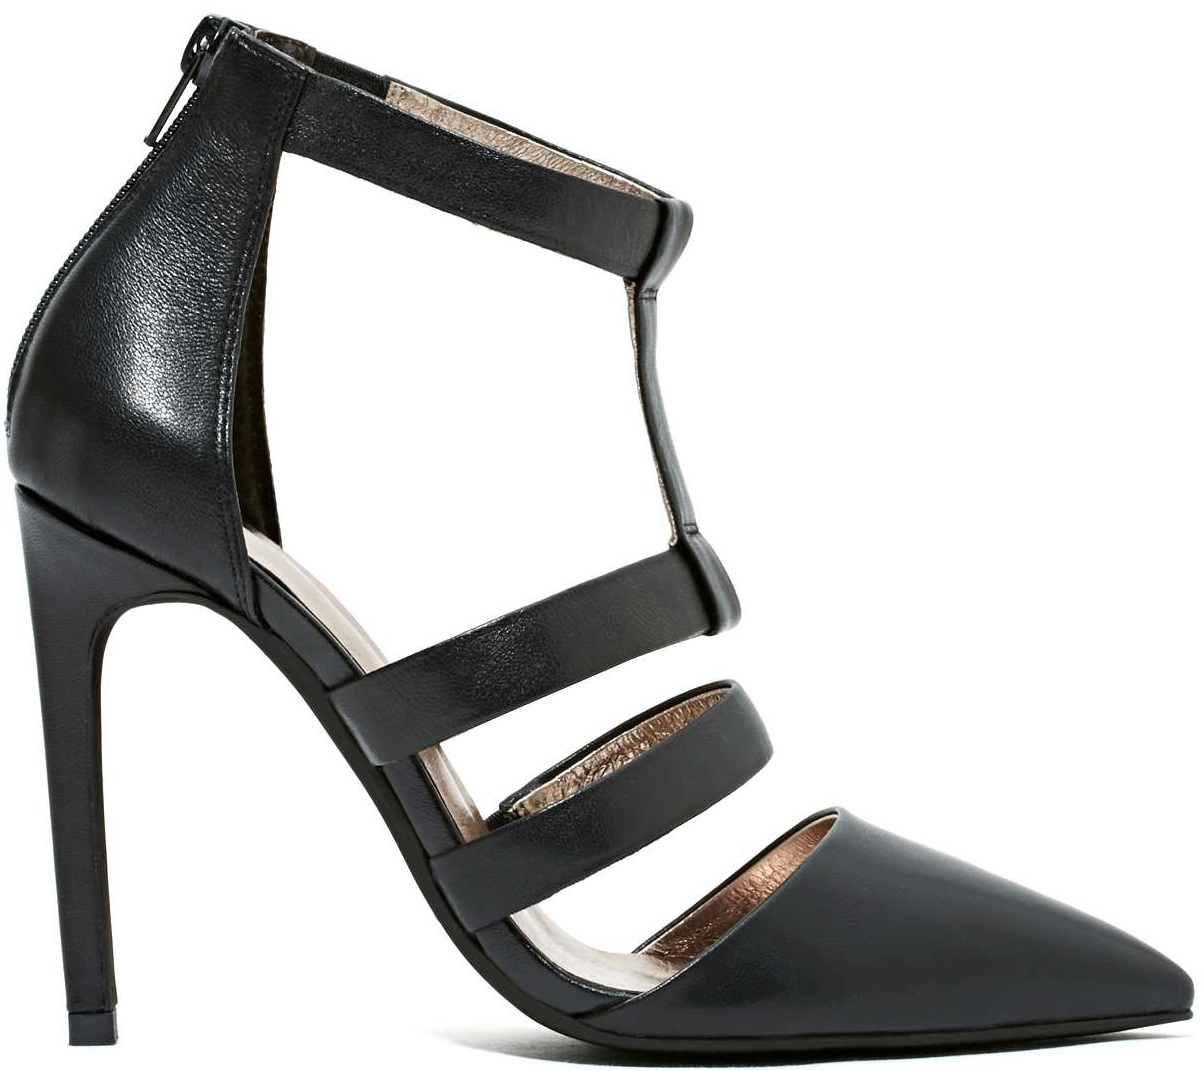 Jeffrey Campbell Black Tamarind Pump $155.00 #shoes #heels - CLICK HERE for more: http://www.needcuteshoes.com/products/jeffrey-campbell-black-tamarind-pump/